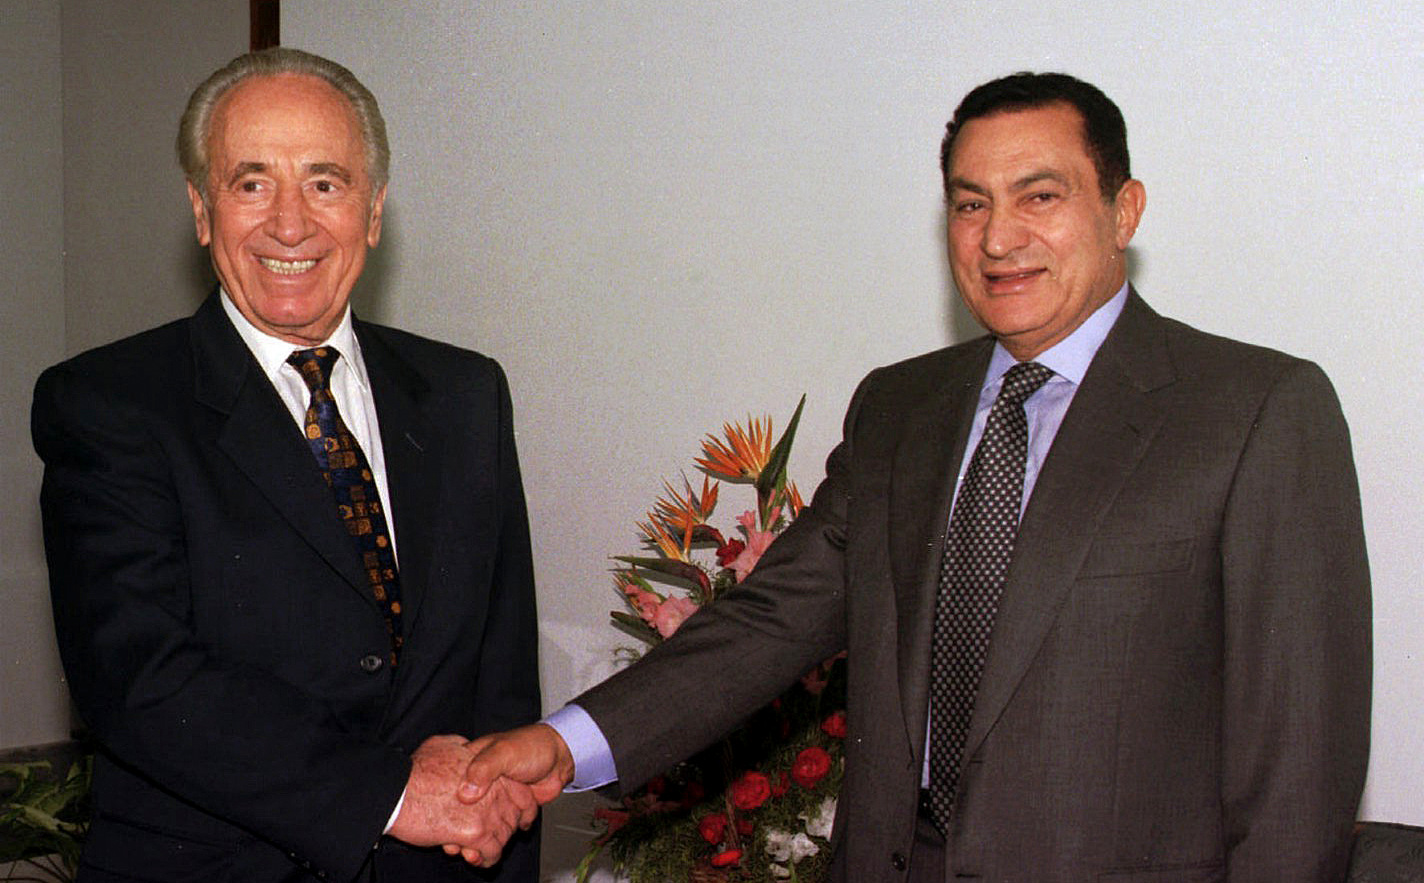 , Egyptian President Hosni Mubarak, right, shakes hands with former Israeli Prime Minister Shimon Peres at the Sharm el Sheikh resort in the Sinai peninsula for talks on the Middle East peace process, Oct. 1996. (AP/Mohamed El-Dakhakhny)